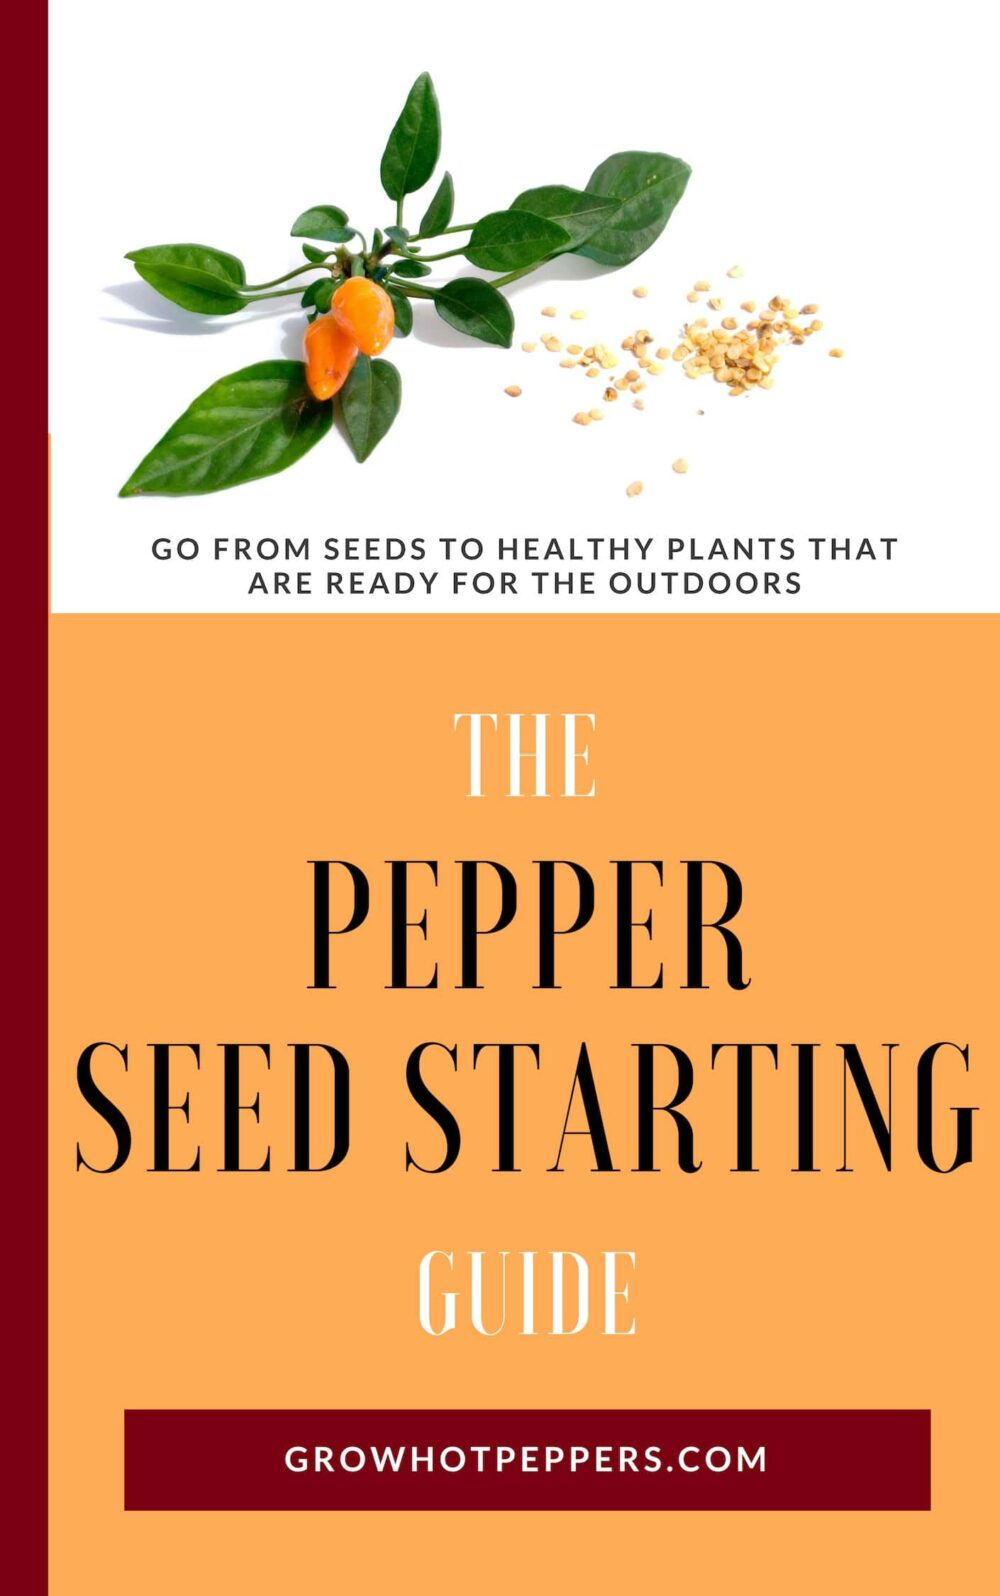 The Pepper Seed Starting Guide